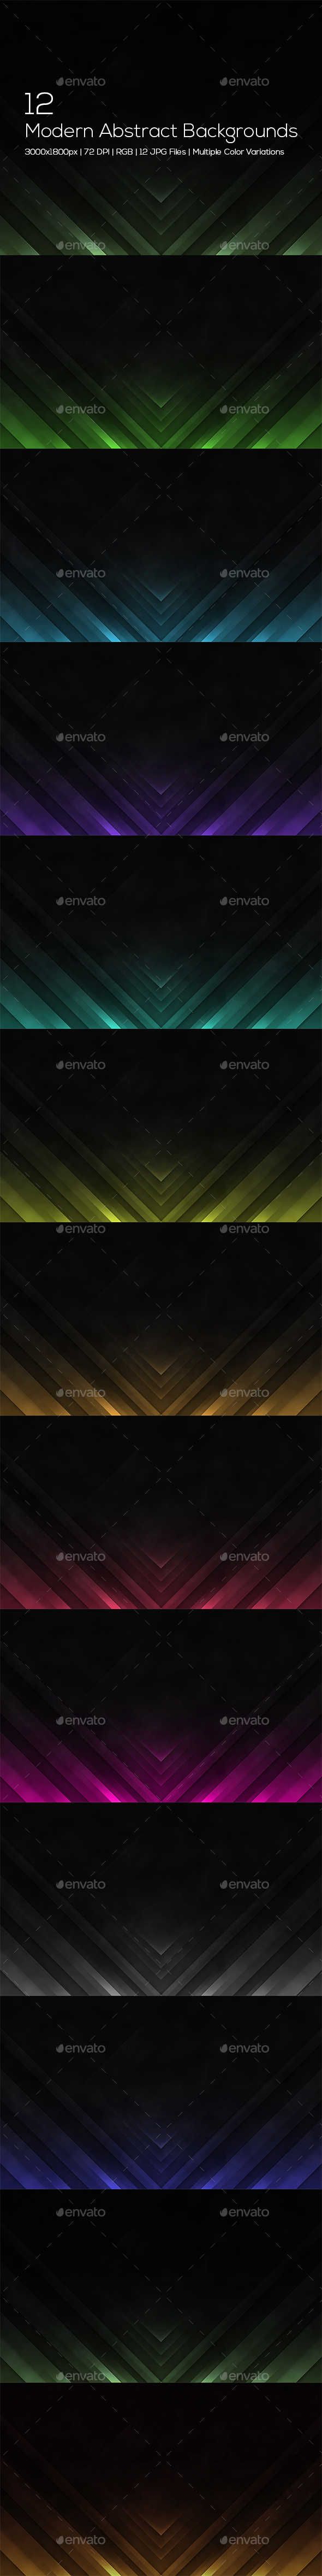 Modern Abstract Backgrounds - Abstract Backgrounds